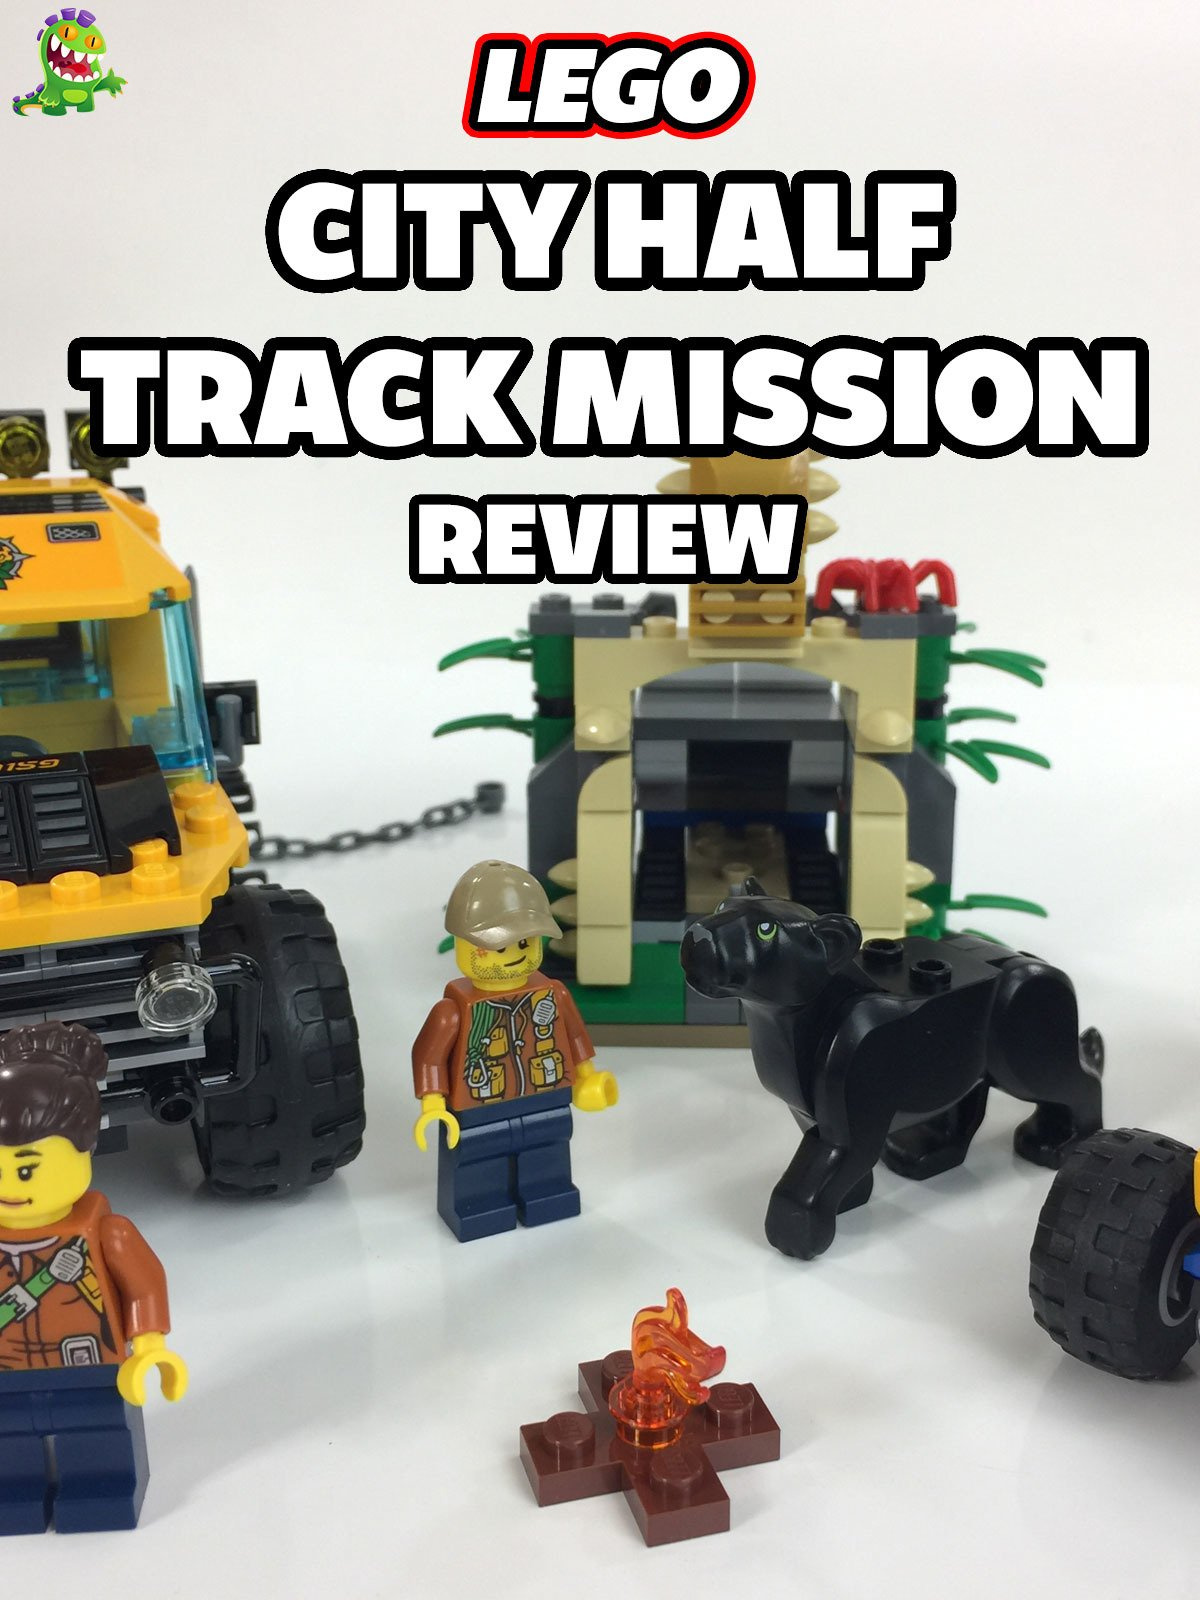 Review: Lego City Half Track Mission Review